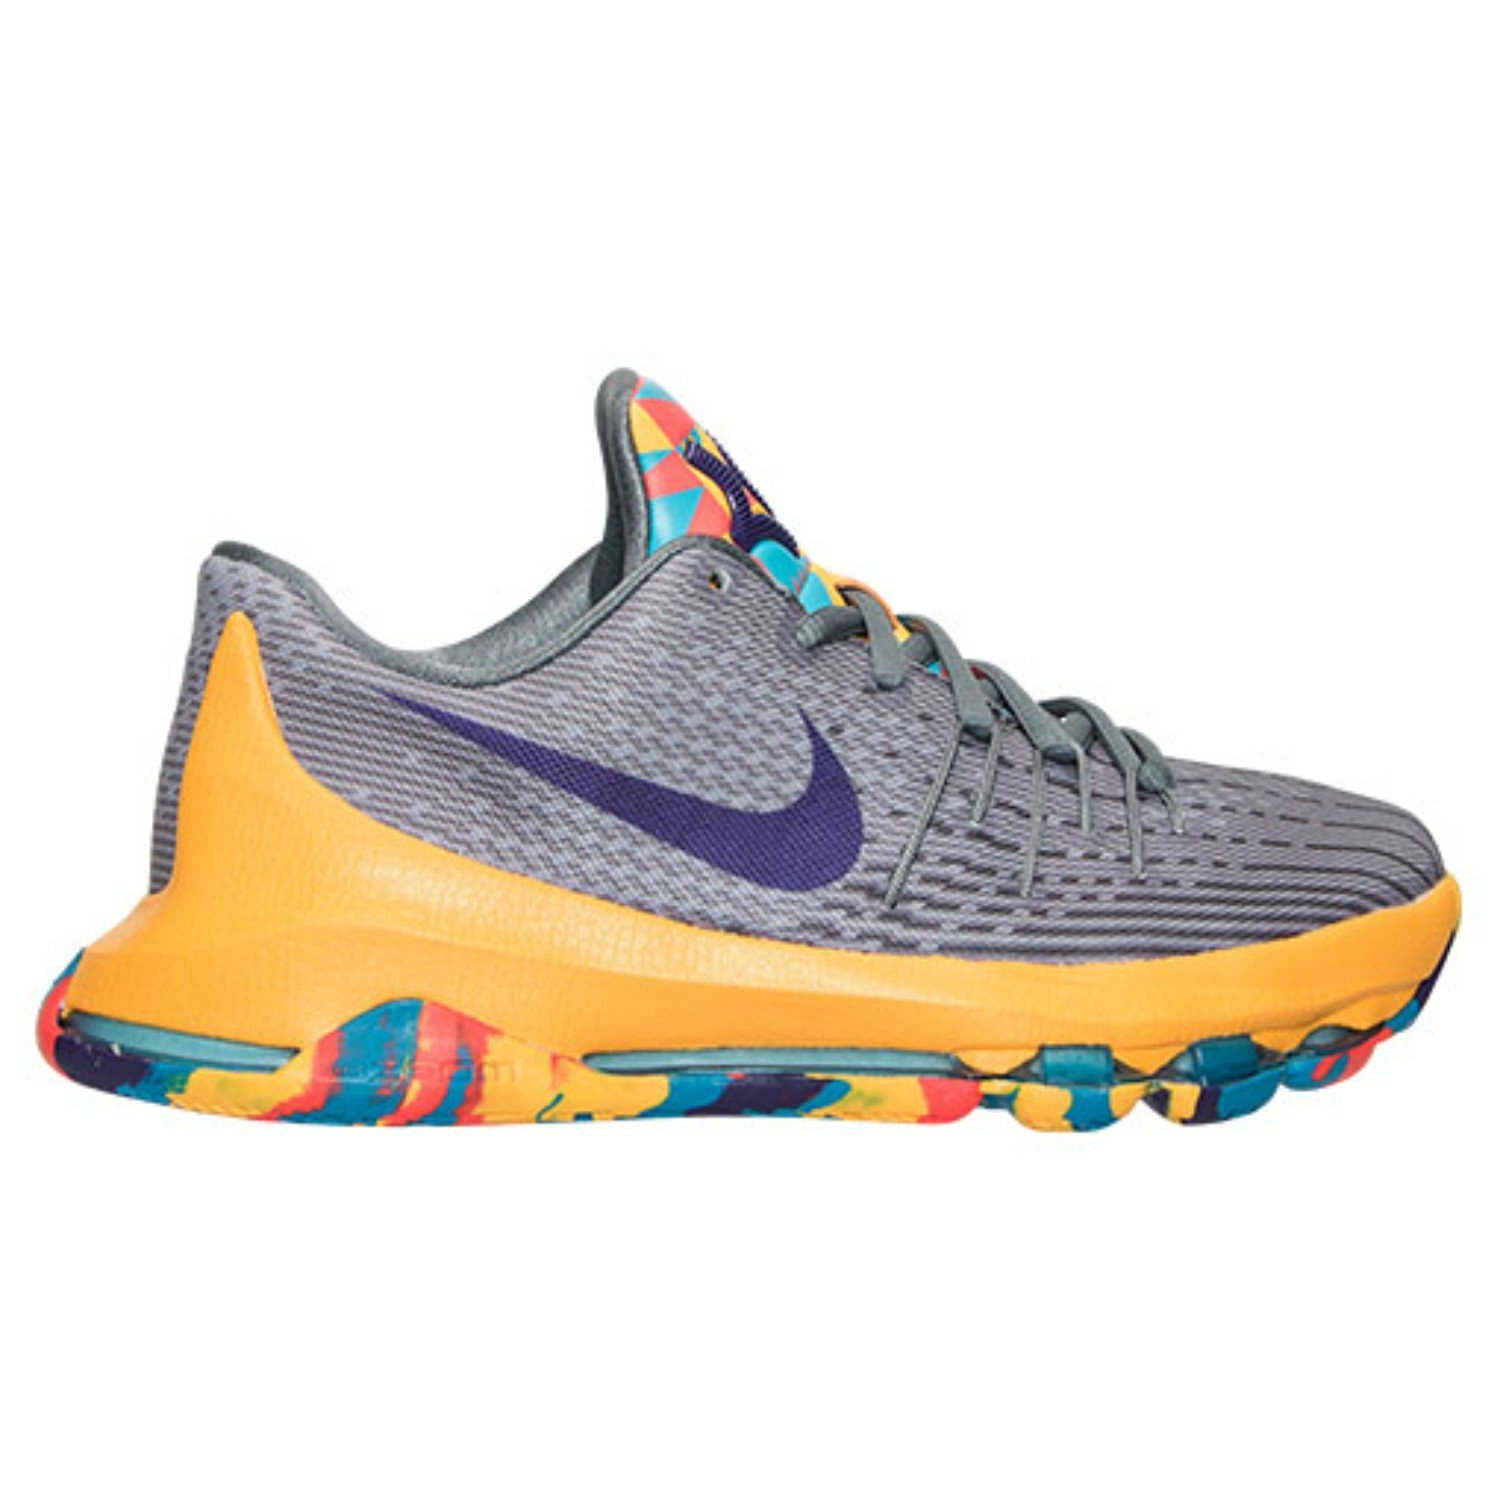 official photos 7c3eb 8a0c7 Buy Nike KD 8 (GS) Grey/Yellow Kevin Durant Basketball ...